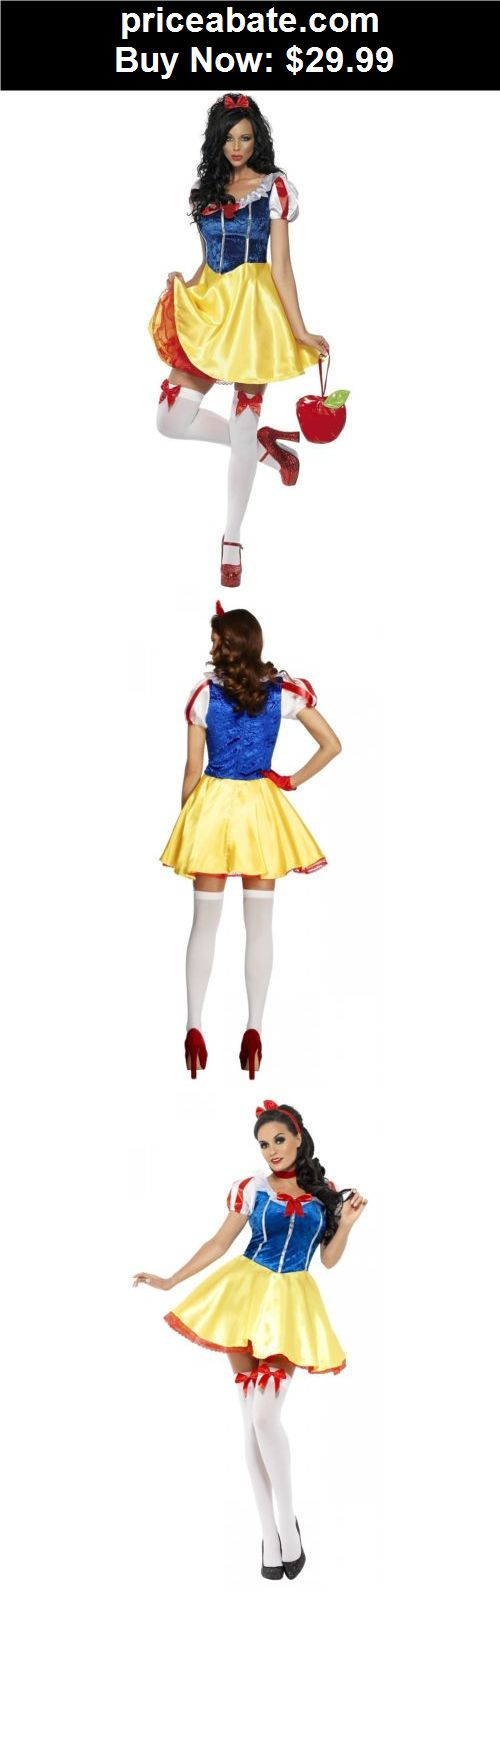 Women-Costumes: Sexy Snow White Costume Adult Fairytale Princess Halloween Fancy Dress - BUY IT NOW ONLY $29.99